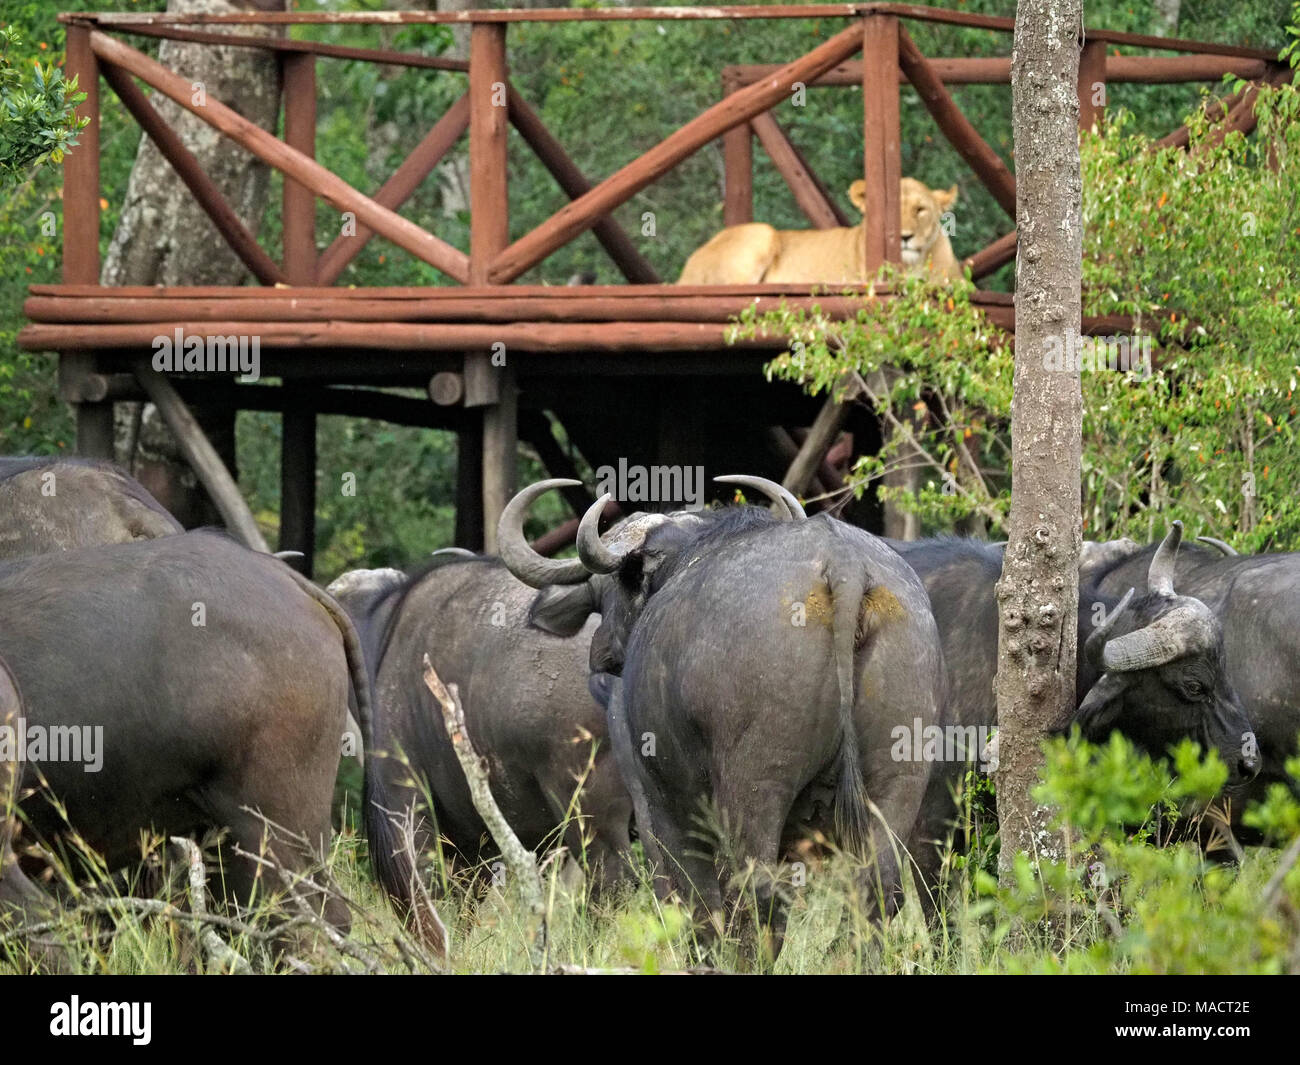 Lioness (Panthera leo) sitting on raised game viewing deck safe from a belligerent herd of cape buffalo below - Masai Mara Conservancies, Kenya,Africa - Stock Image